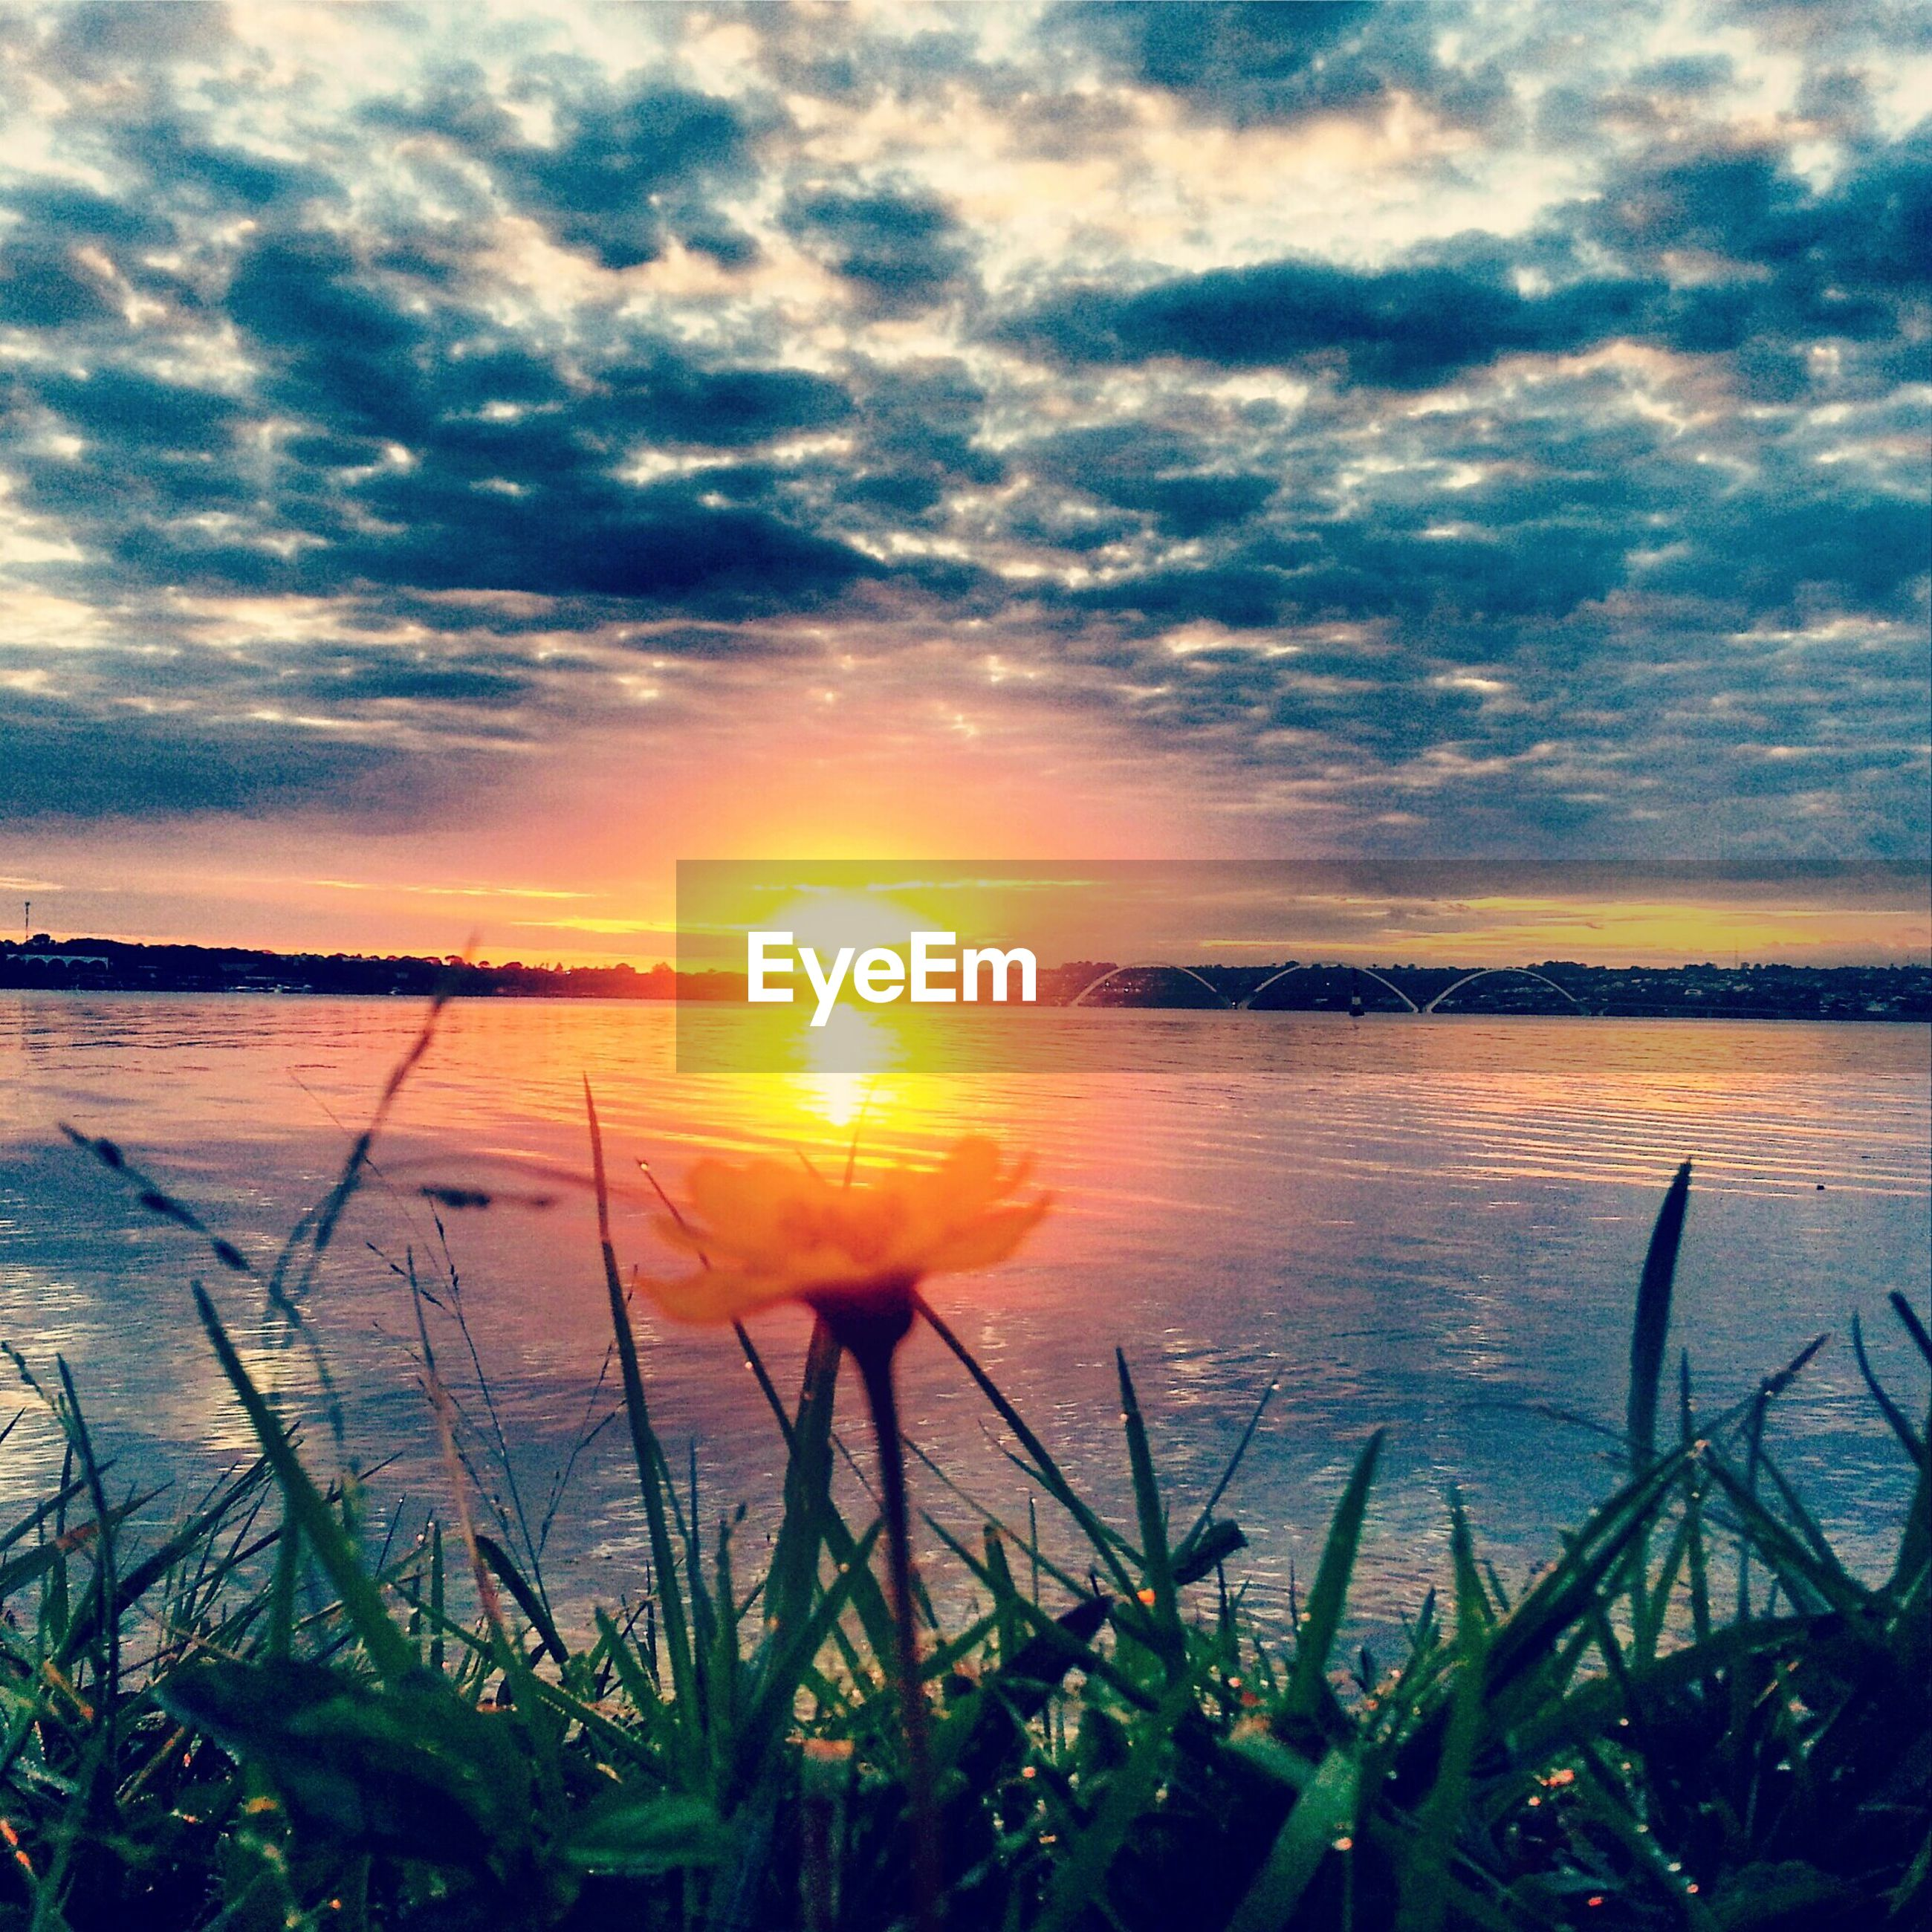 sunset, sky, sun, water, tranquil scene, scenics, tranquility, beauty in nature, cloud - sky, nature, reflection, sea, idyllic, cloud, plant, horizon over water, cloudy, sunlight, grass, orange color